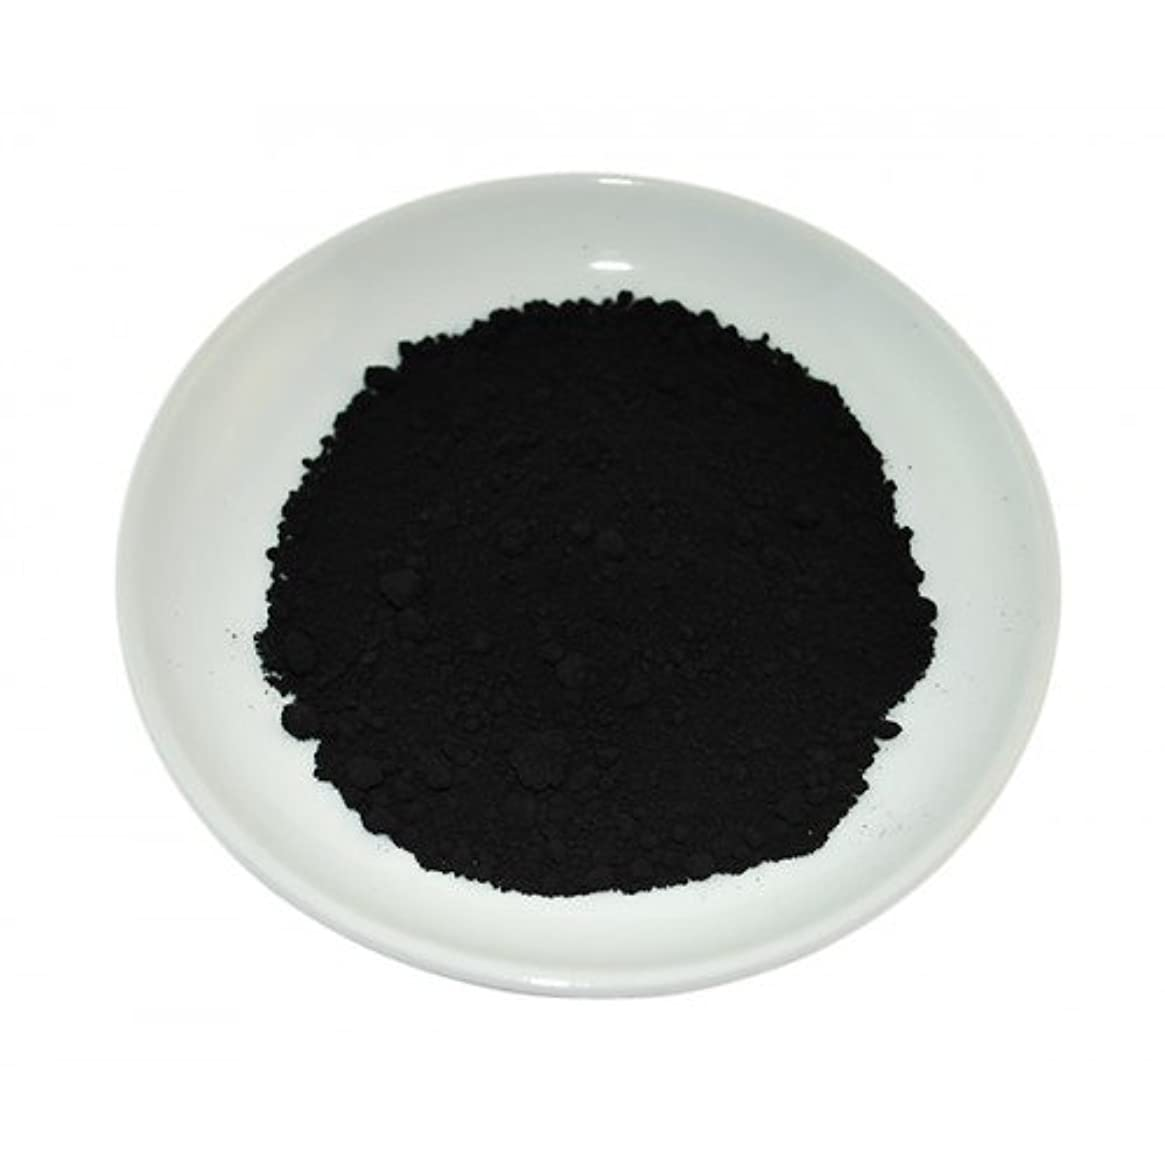 Black Oxide Mineral Powder 25g